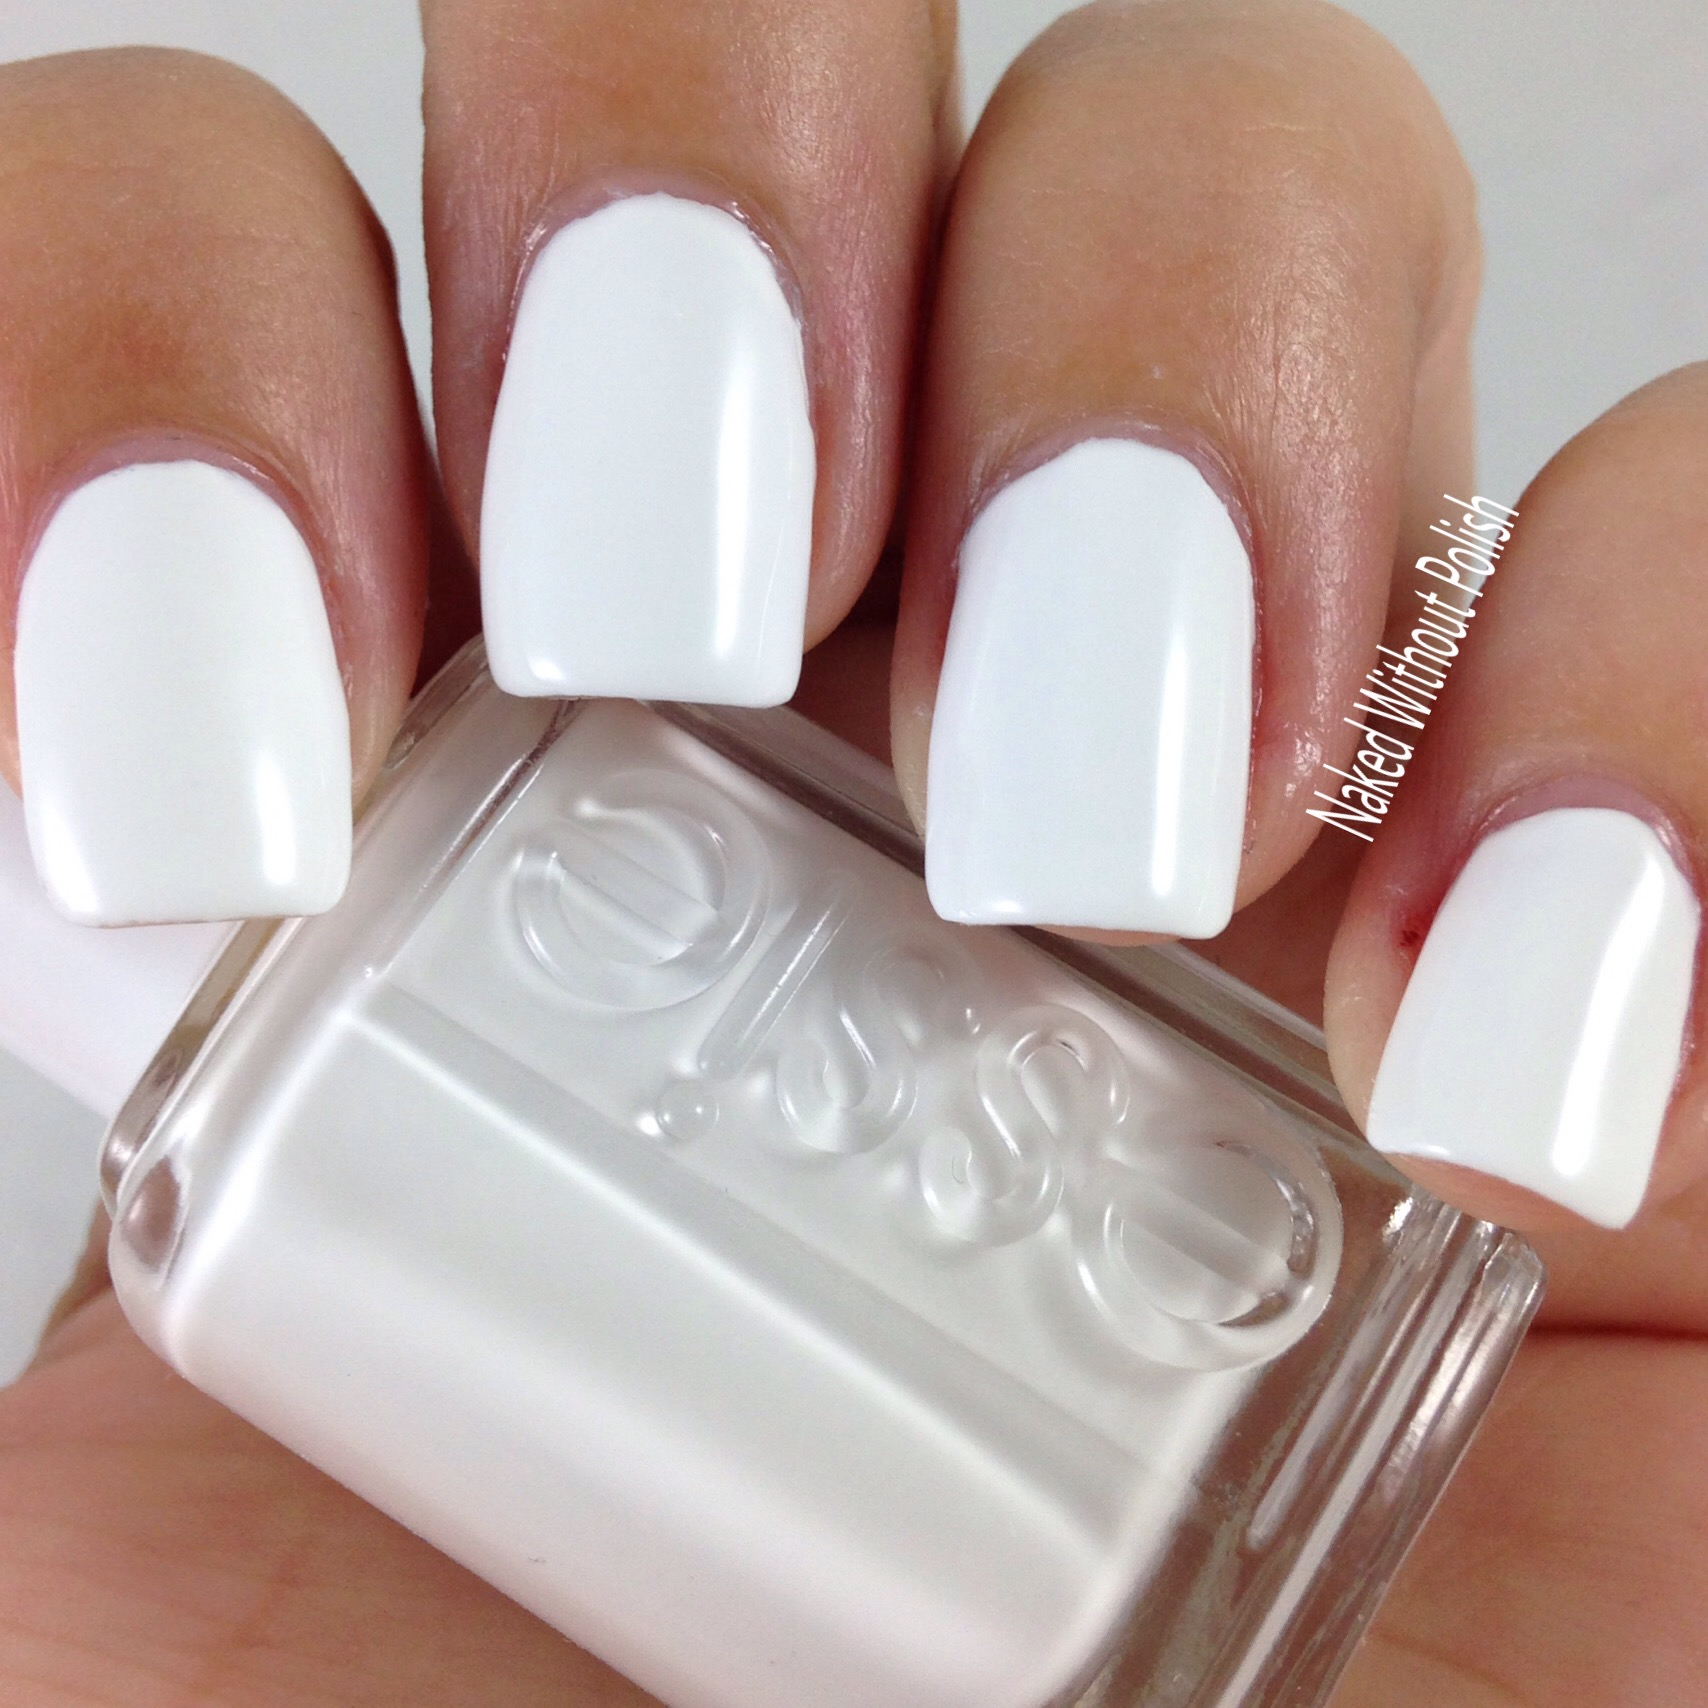 Essie Core Colors Swatch and Review - Naked Without Polish